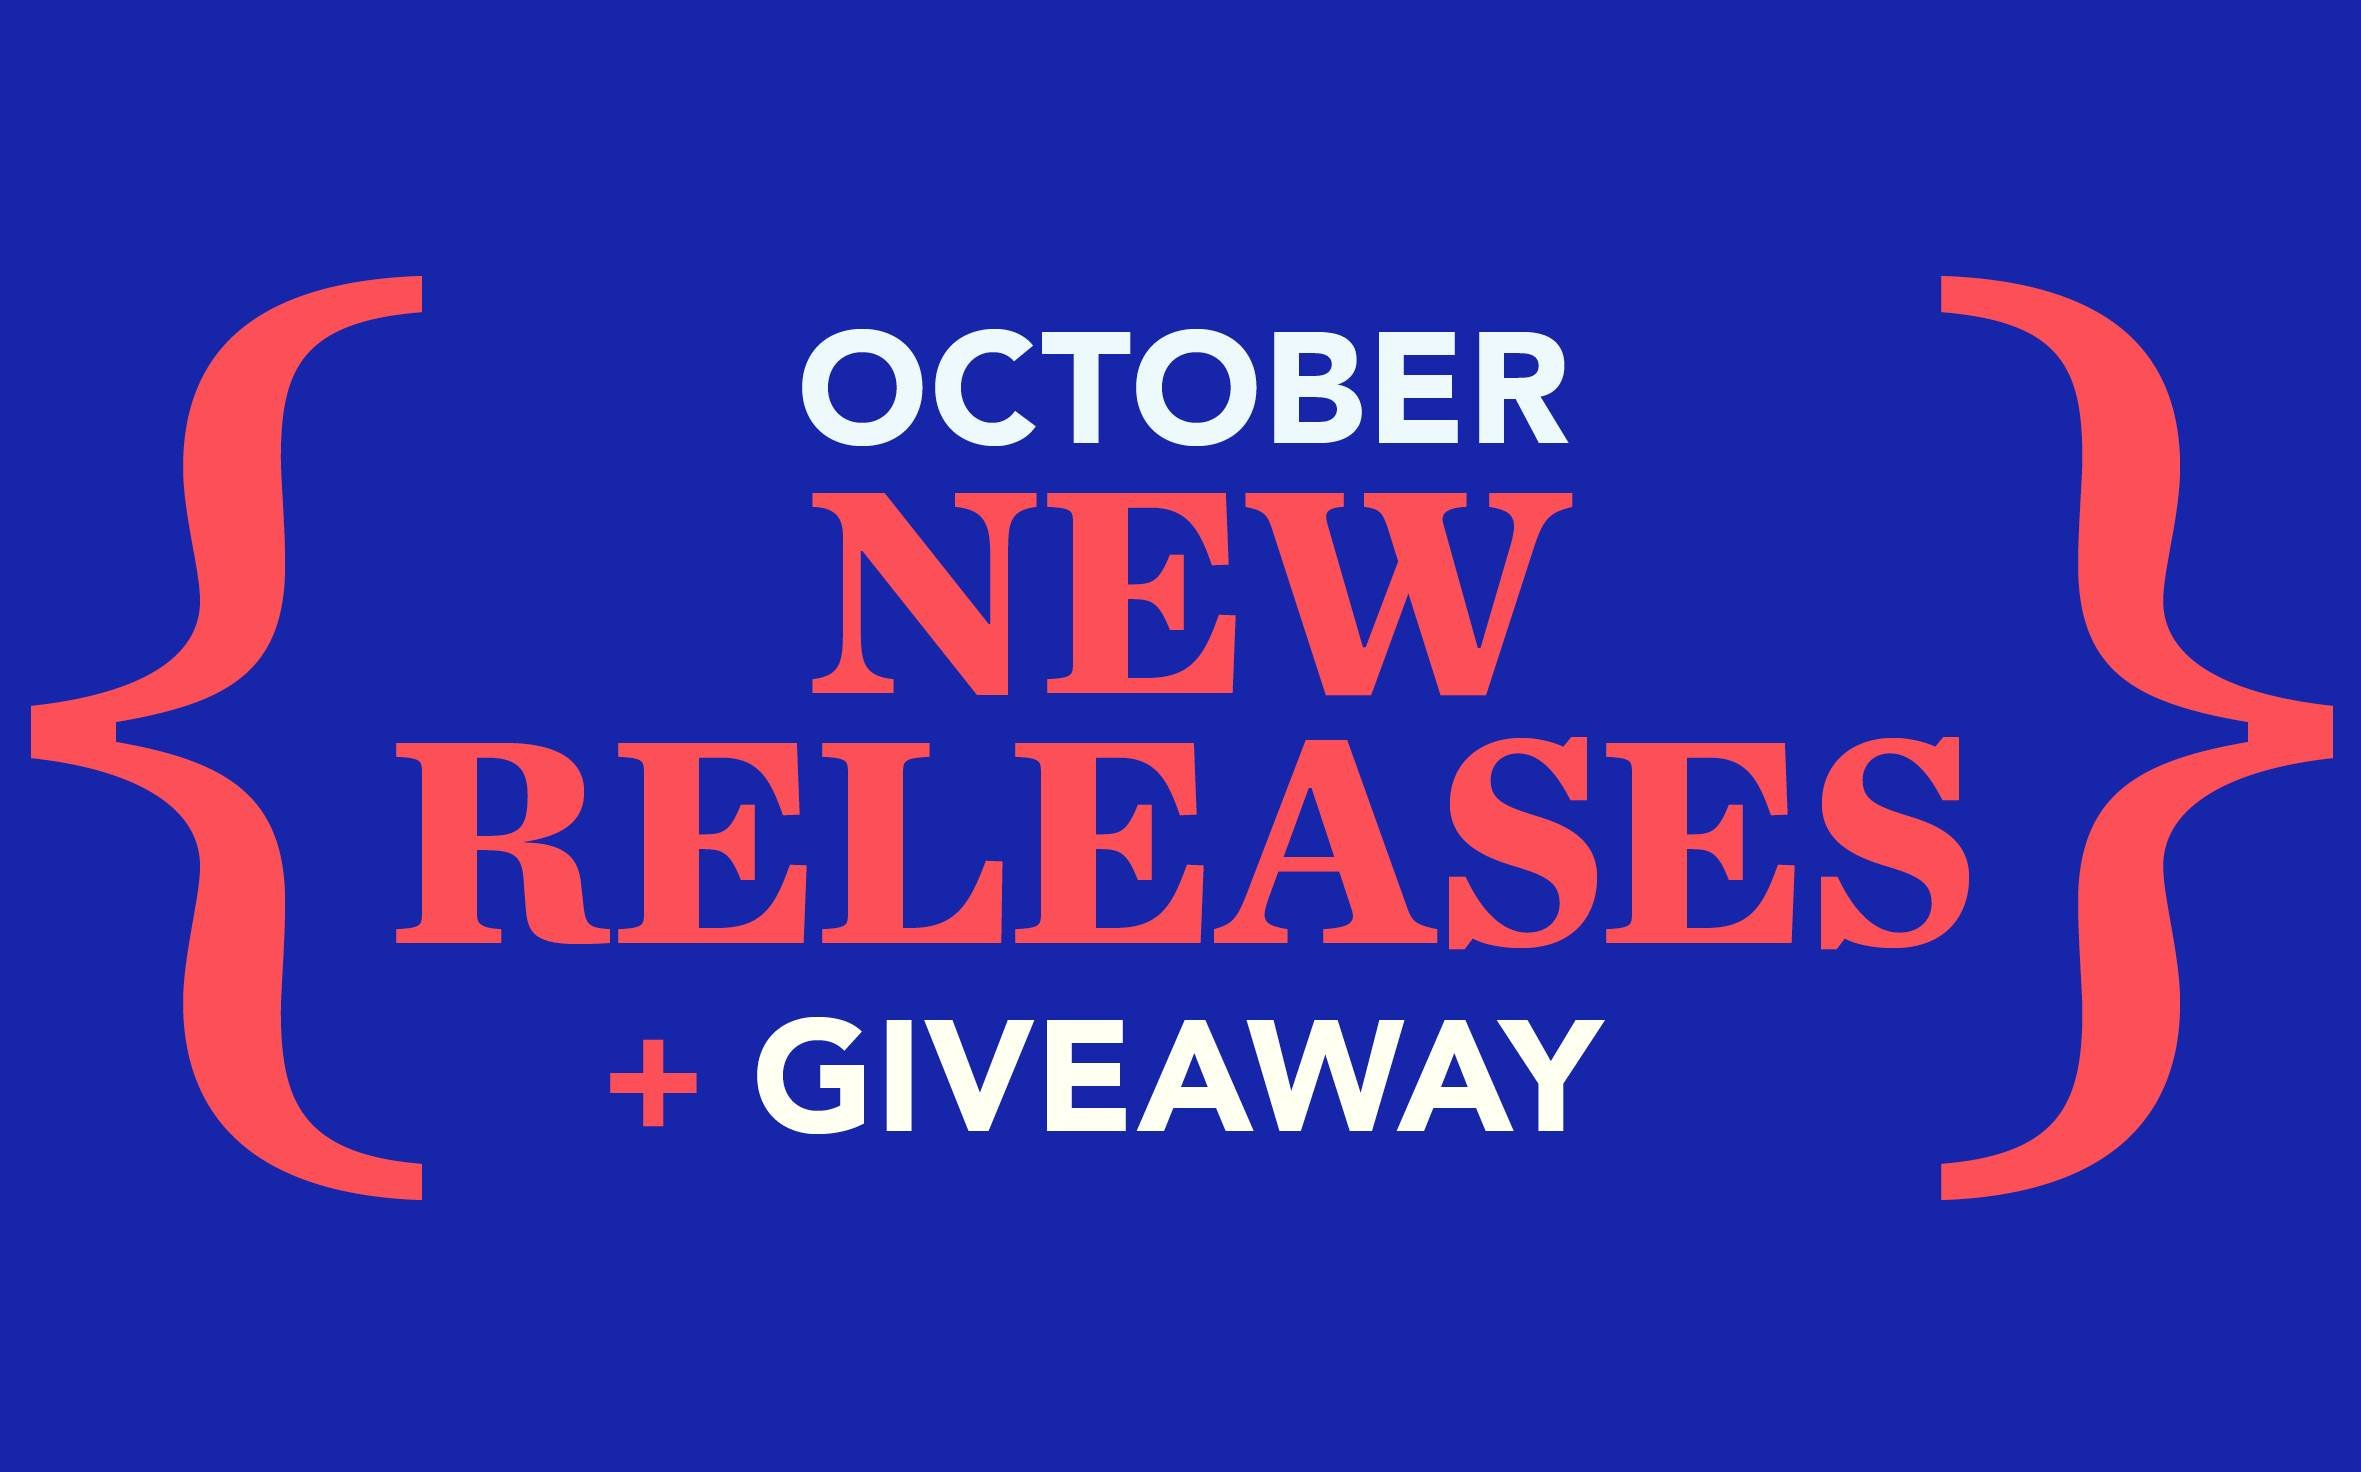 October New Releases and Giveaway